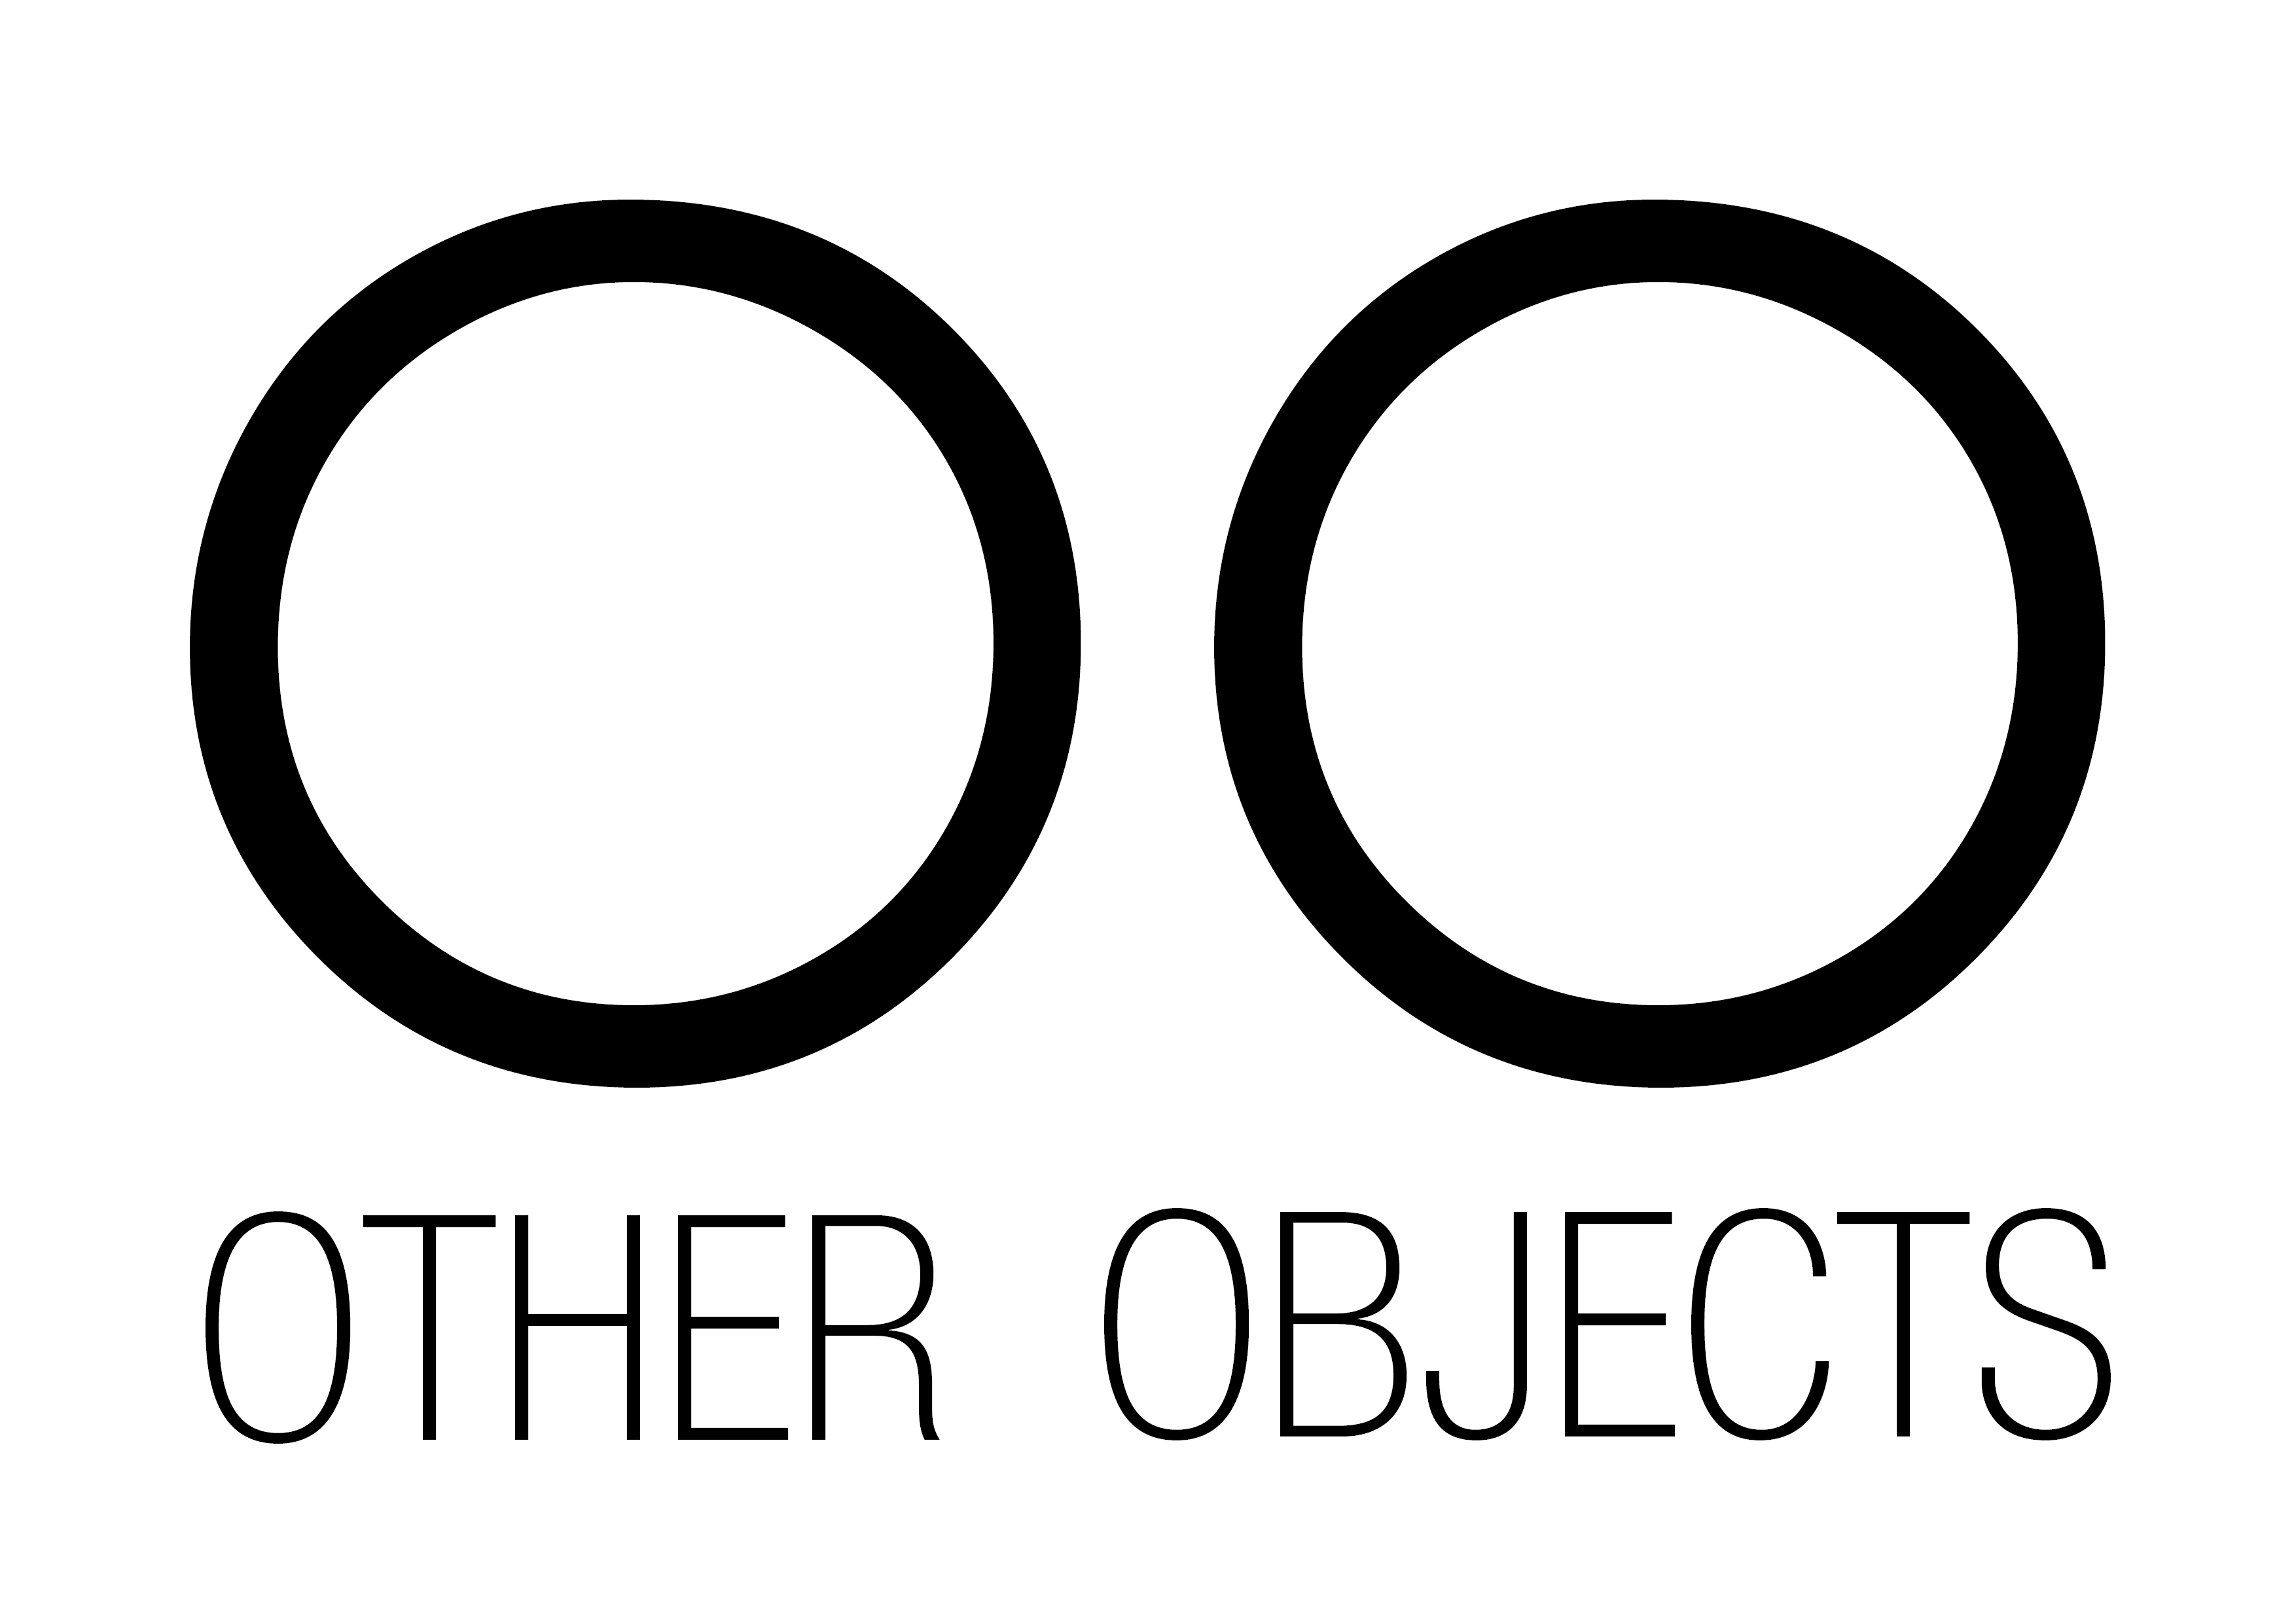 OTHER OBJECTS